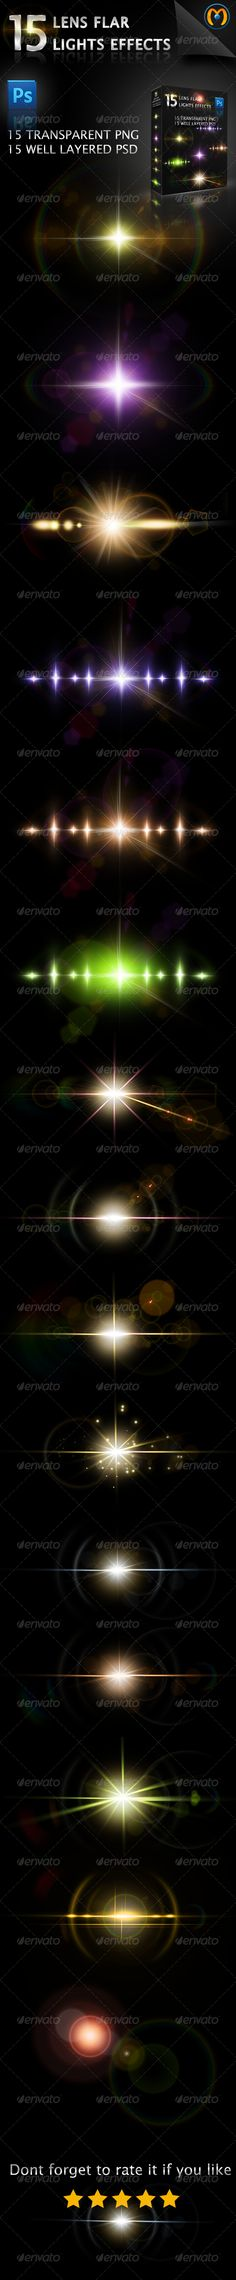 Throw Pillows Vs Lens Flare : DeviantArt: More Artists Like fire spark png by dbszabo1 Spark Pinterest deviantART and Artist